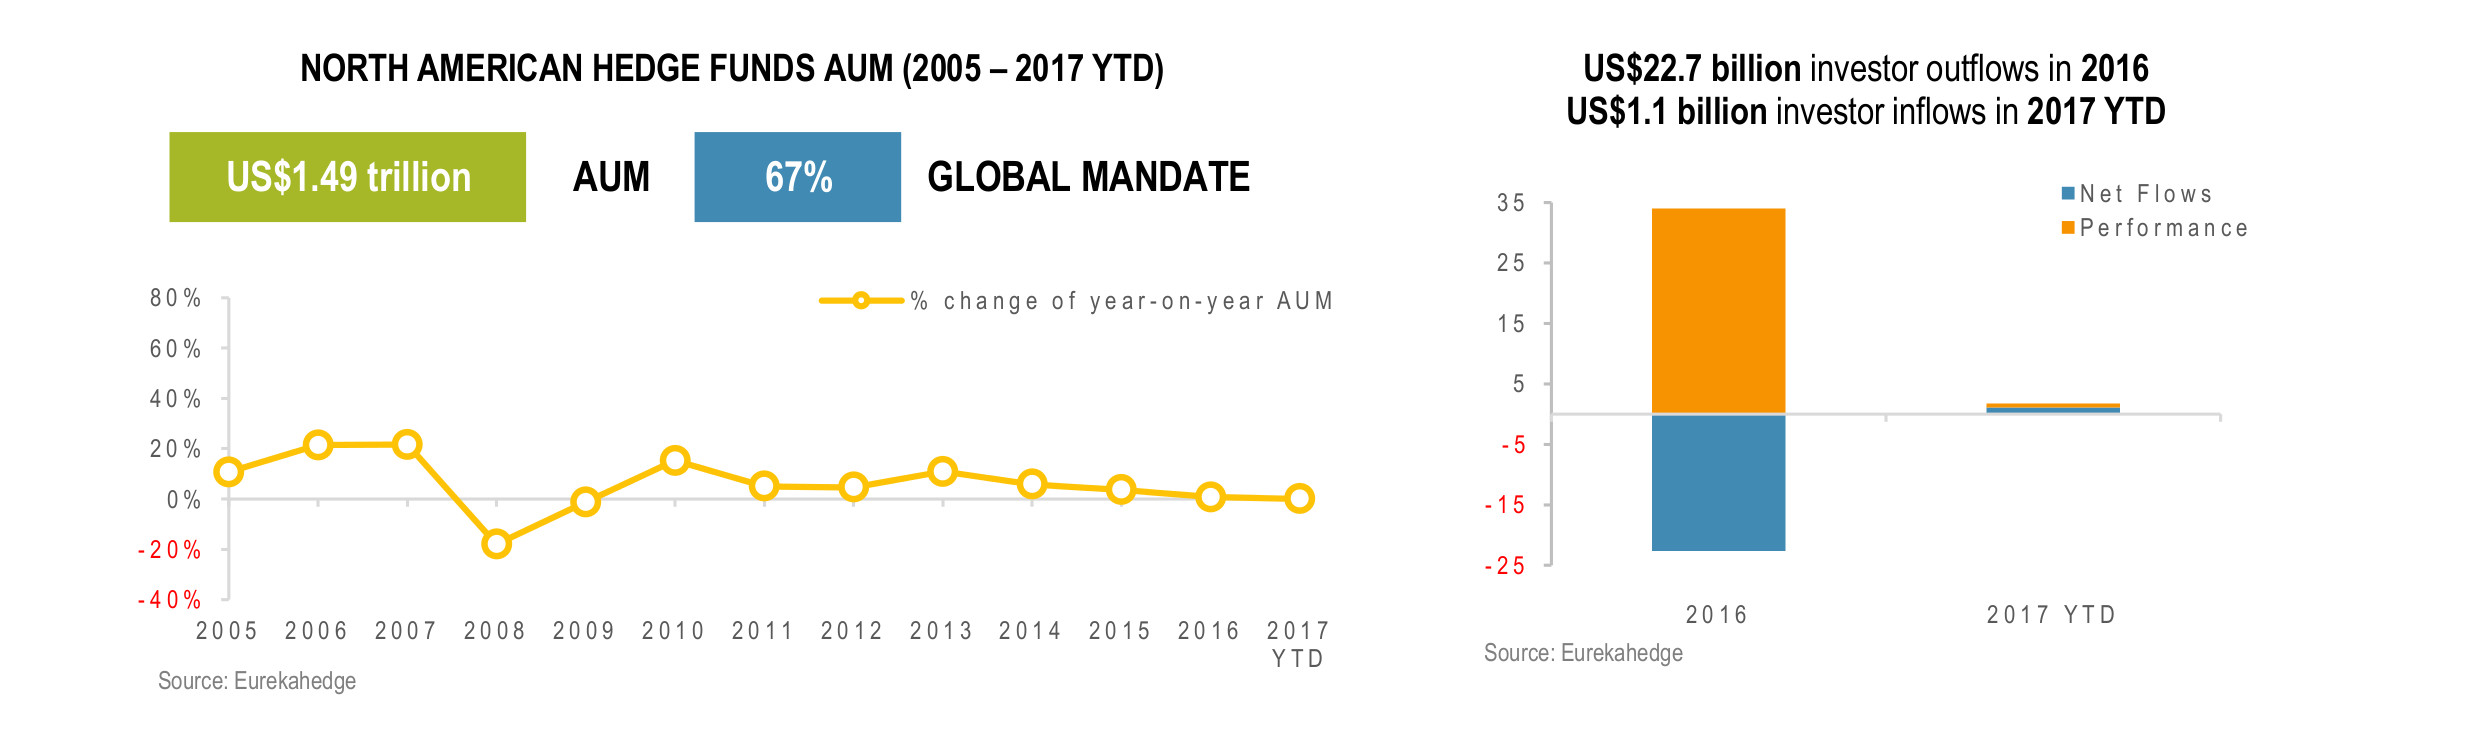 North American Hedge Fund Infographic March 2017 - AUM and Gloabl Mandate